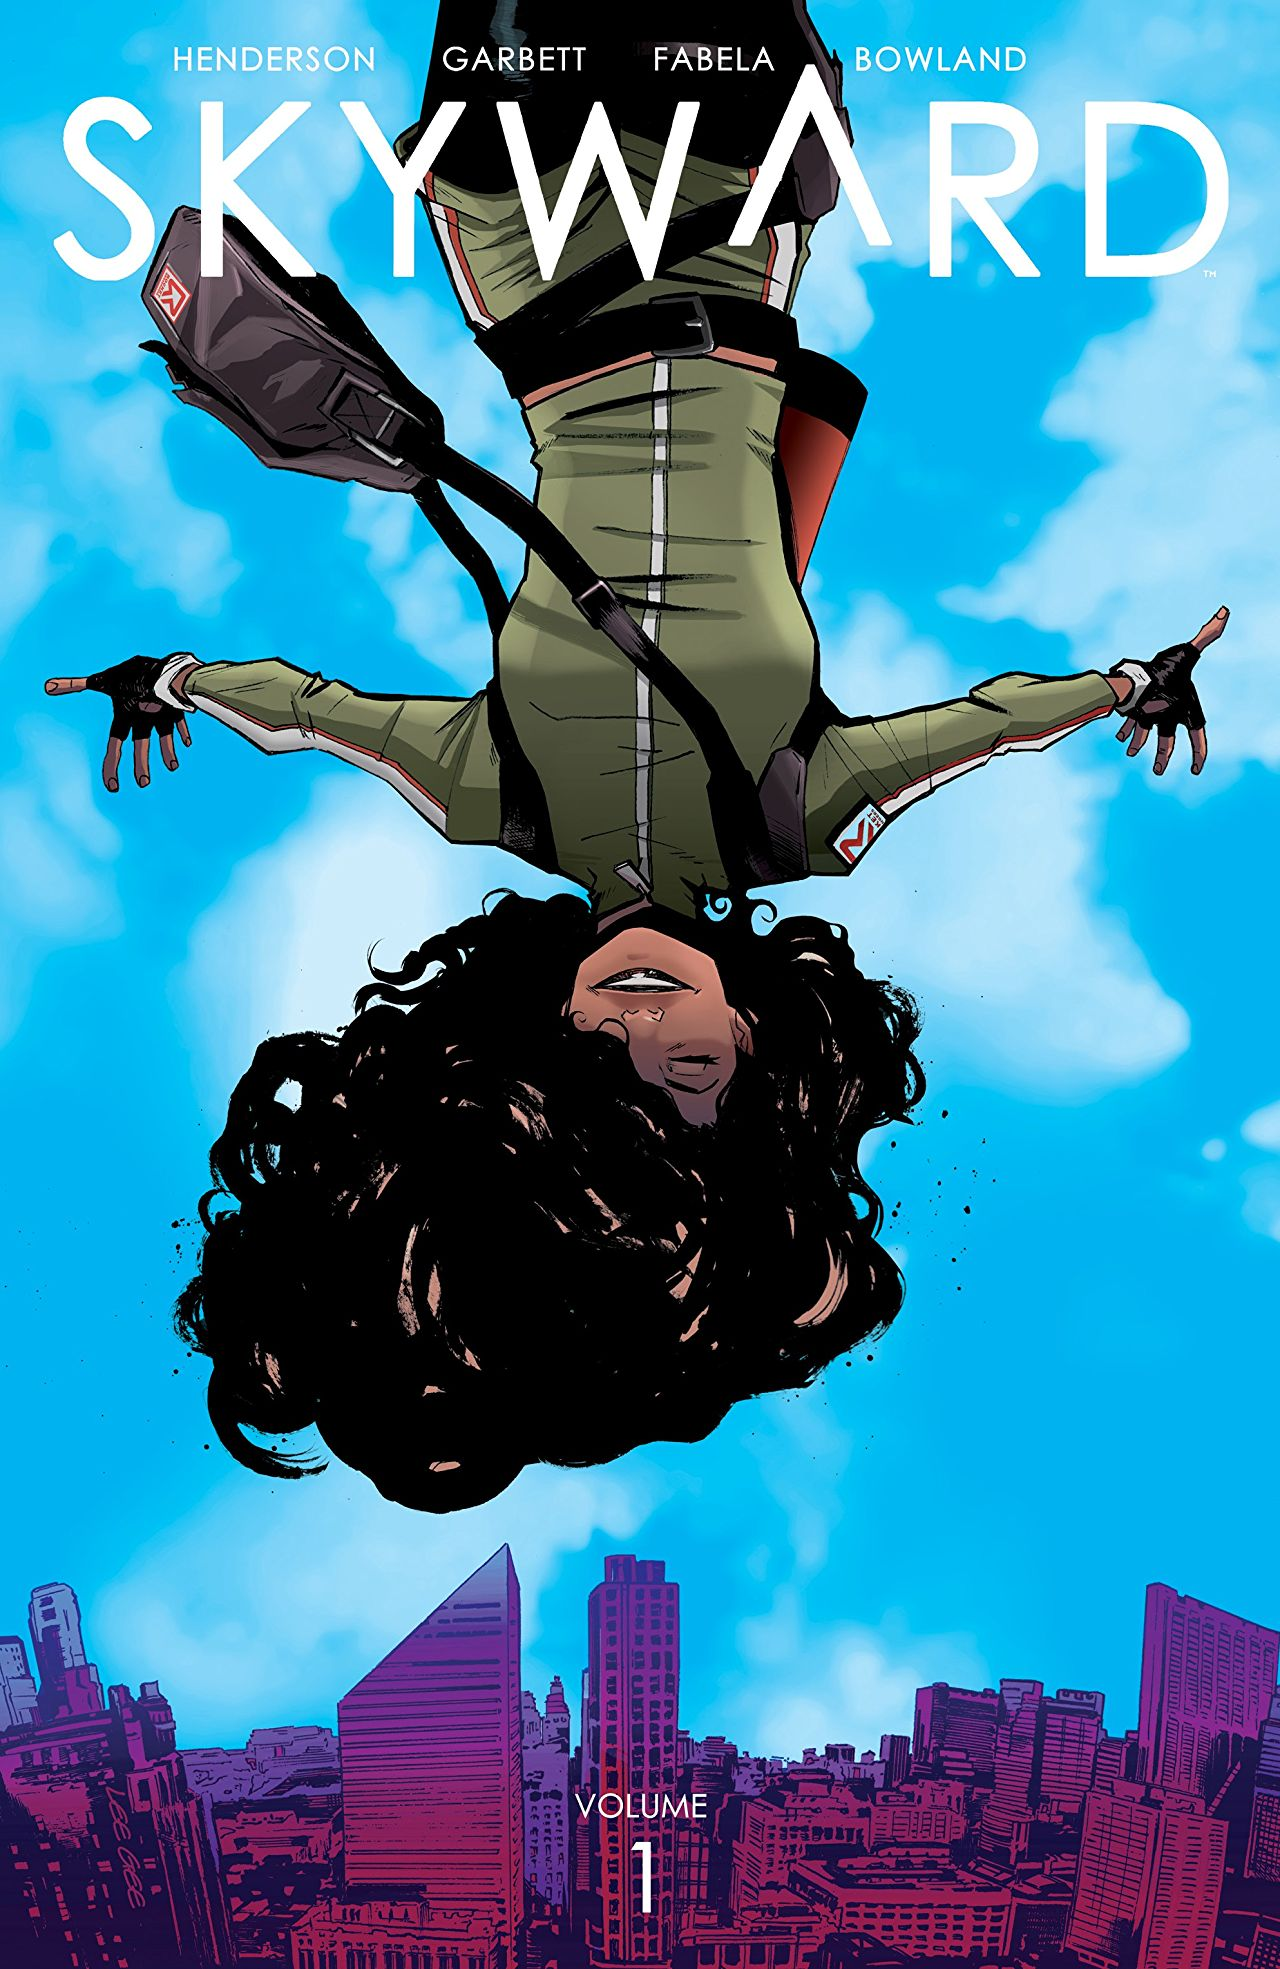 Skyward Vol. 1: My Low-G Life Review